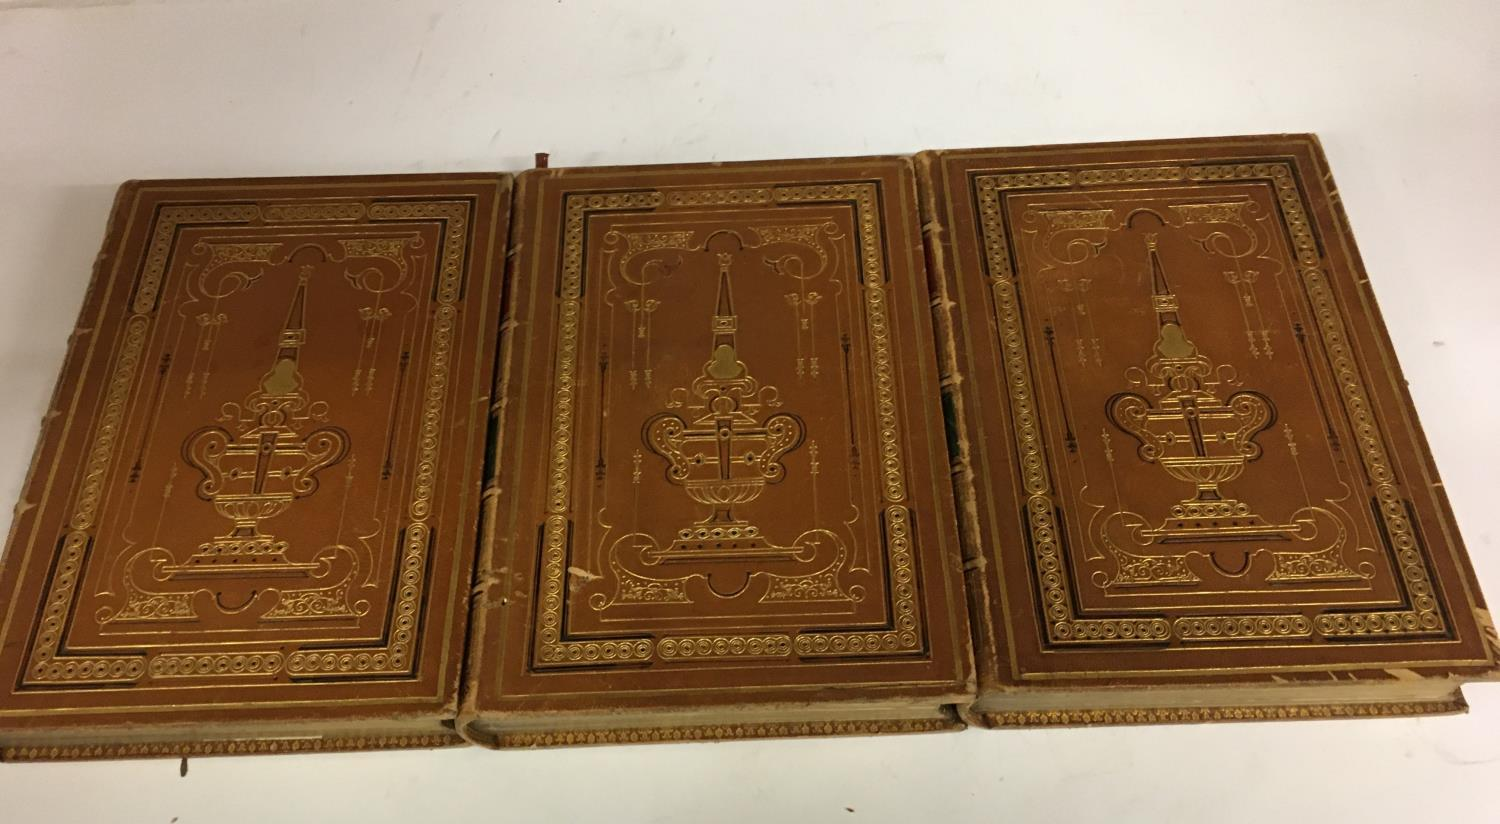 Shakespeare, William. The Complete Works, 3 volumes, plates, contemporary full morocco, decorated - Image 4 of 7